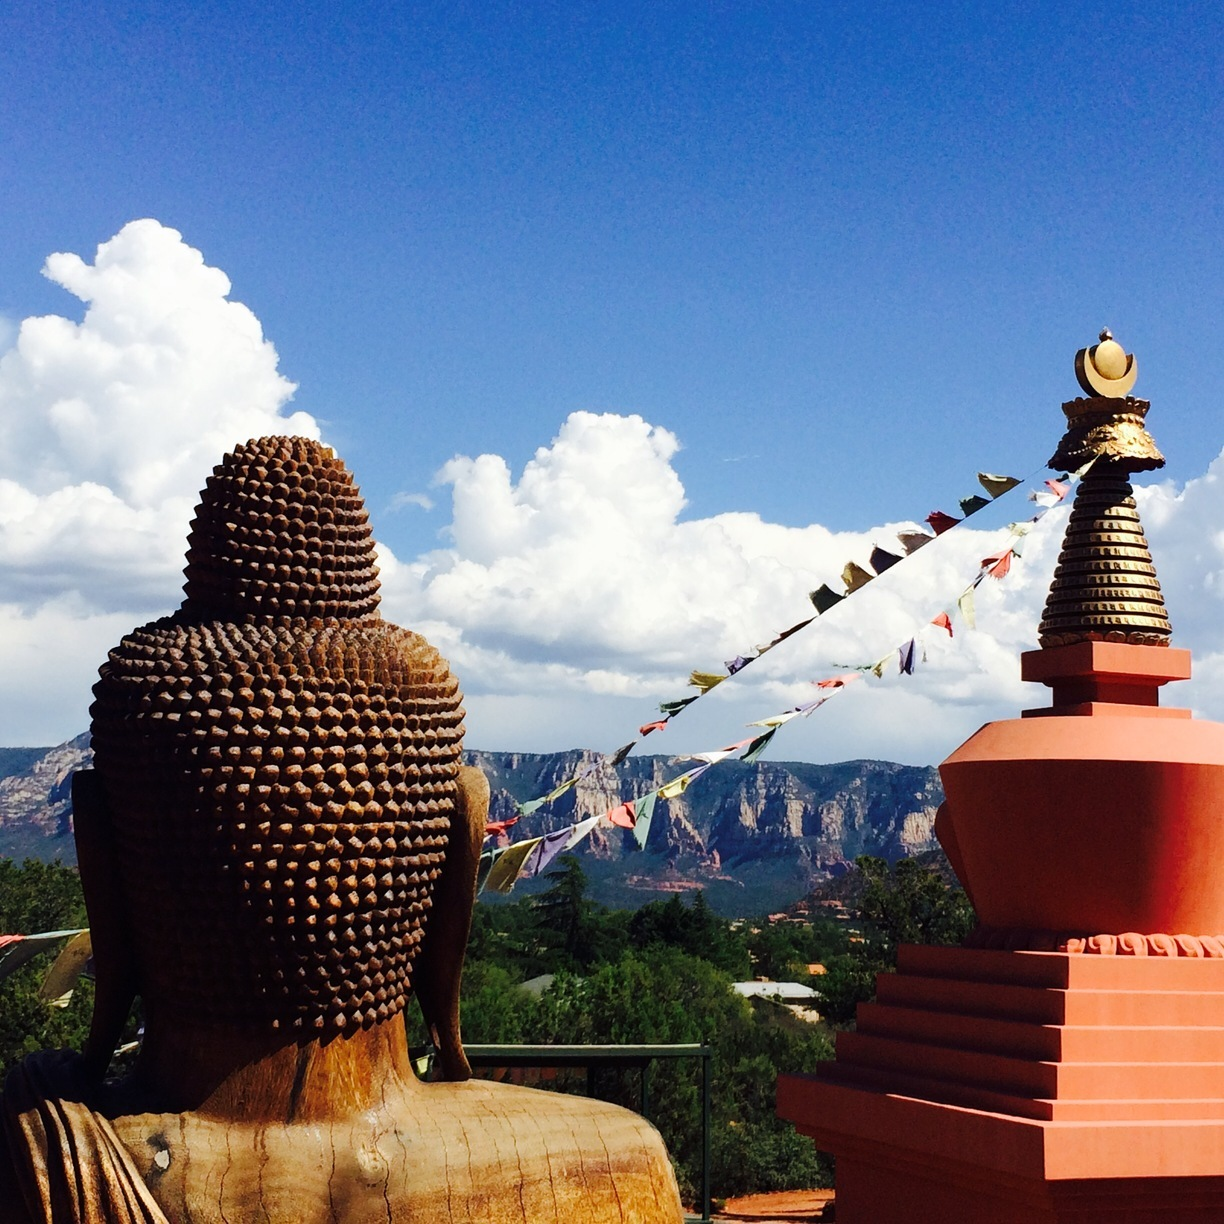 sedona buddhist singles Why sedona is the premier destination for people seeking spiritual healing and fulfillment (hint: the world's most gifted healers and spiritual teachers flock here for this unusual reason) 3 rarely discussed reasons why group retreats often prevent significant spiritual growth and healing.